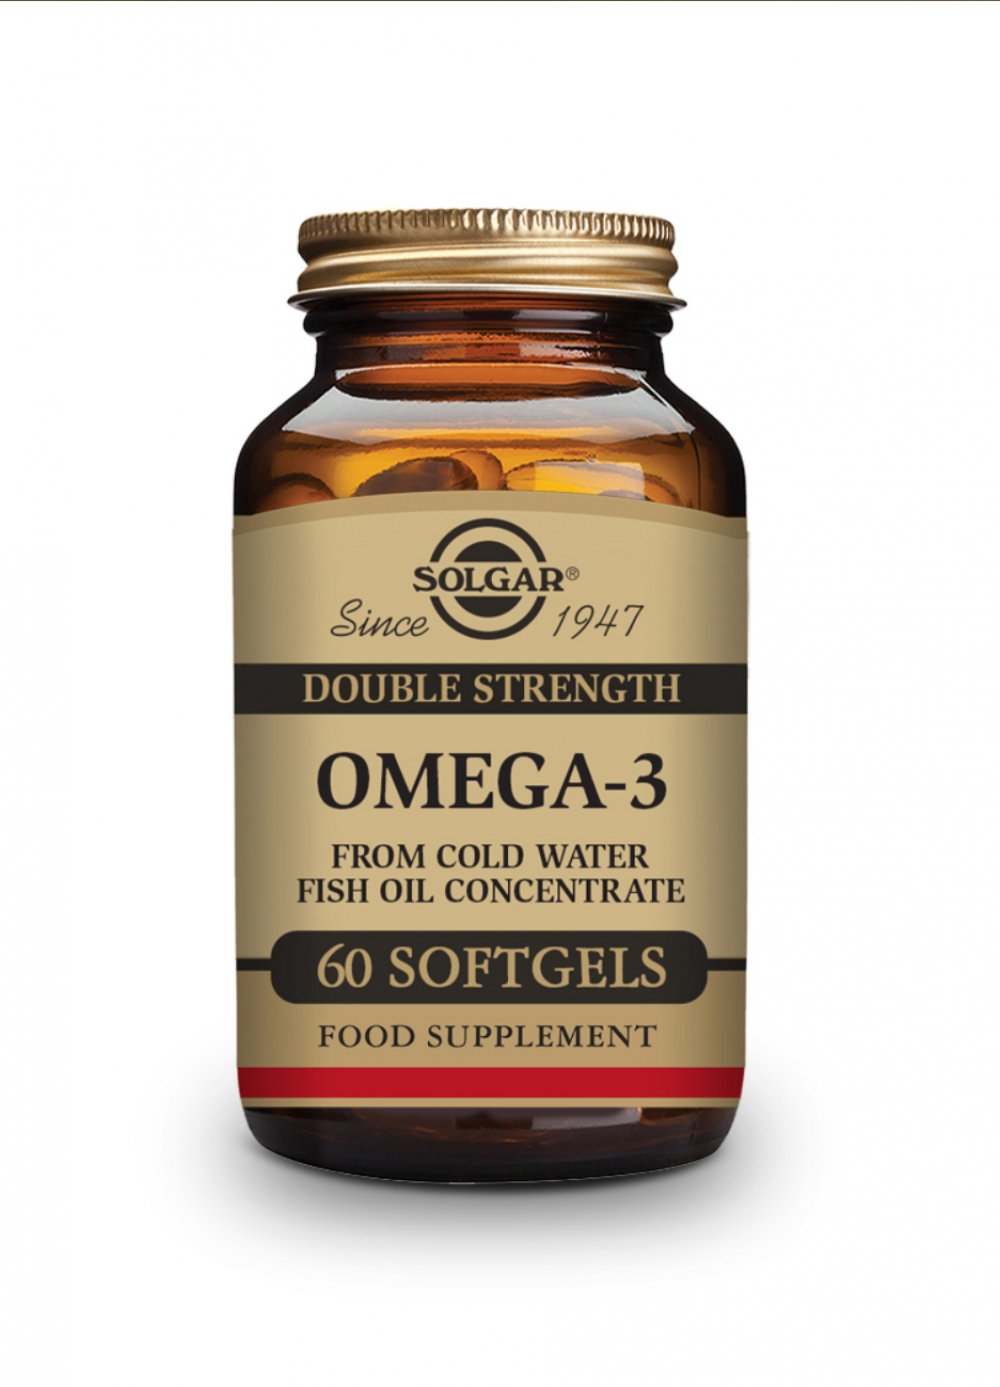 Solgar Double Strenght Omega-3 Fish Oil Concentrate 60 Softgels